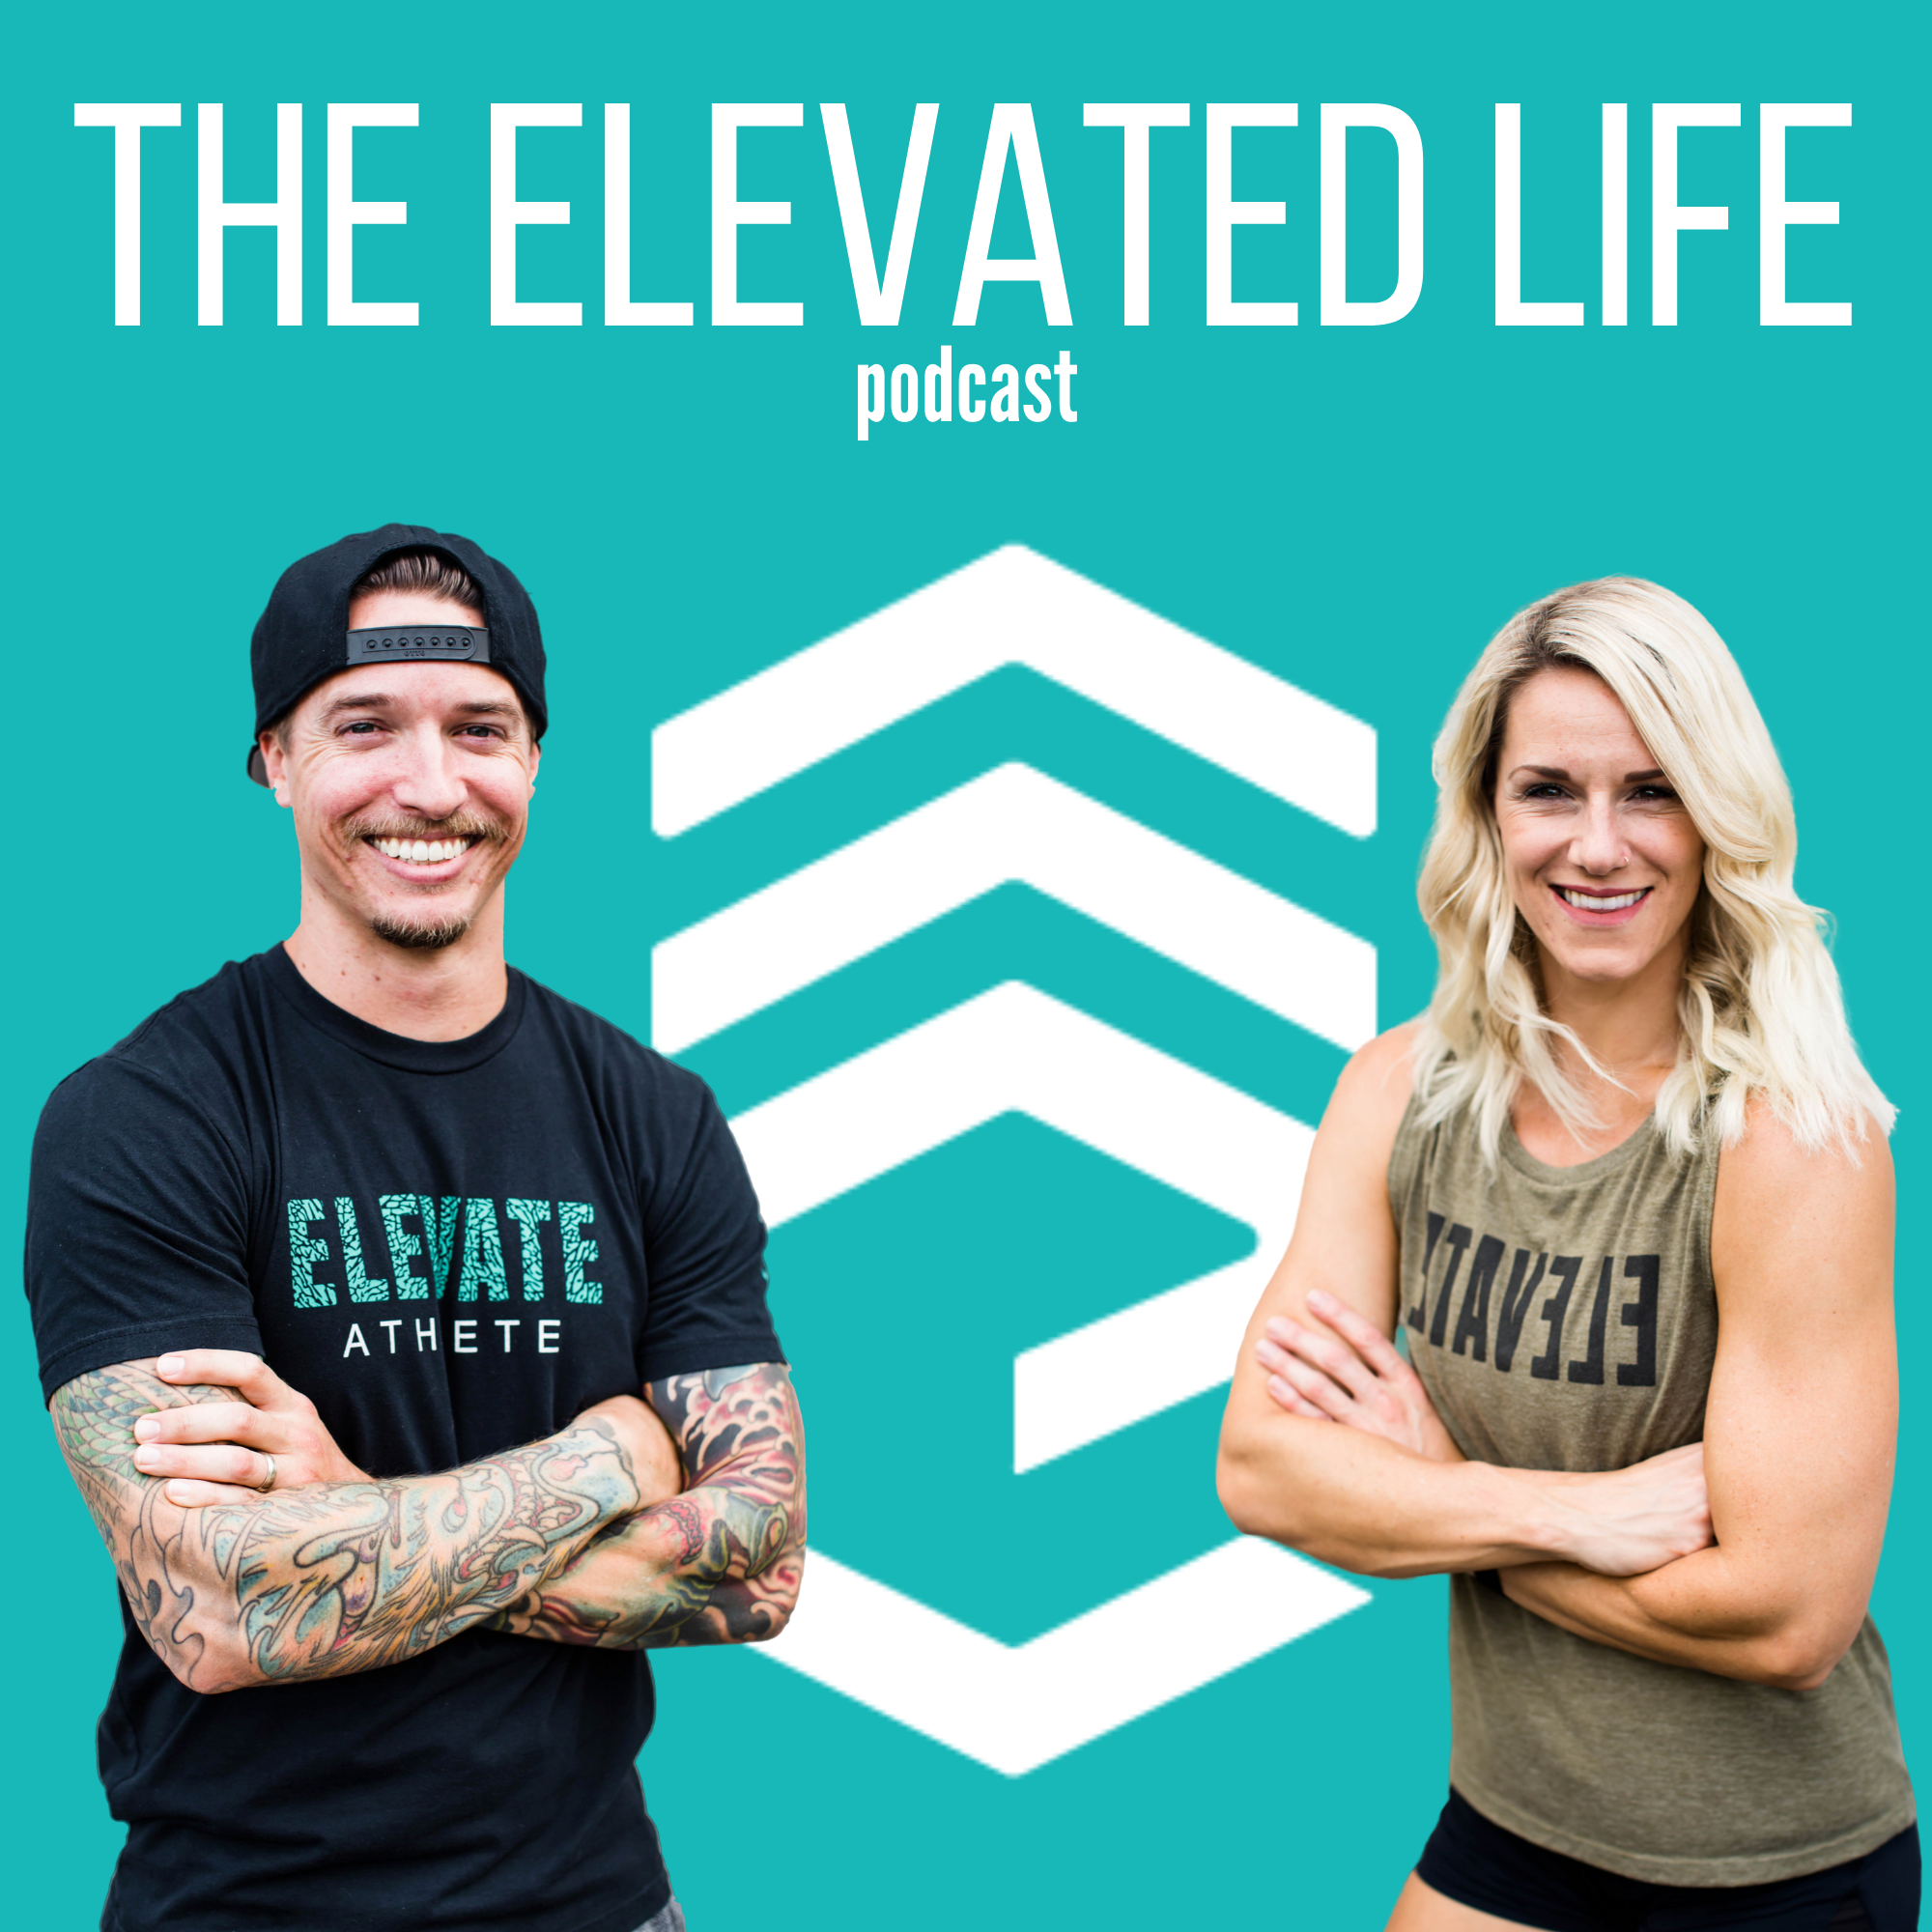 The Elevated Life